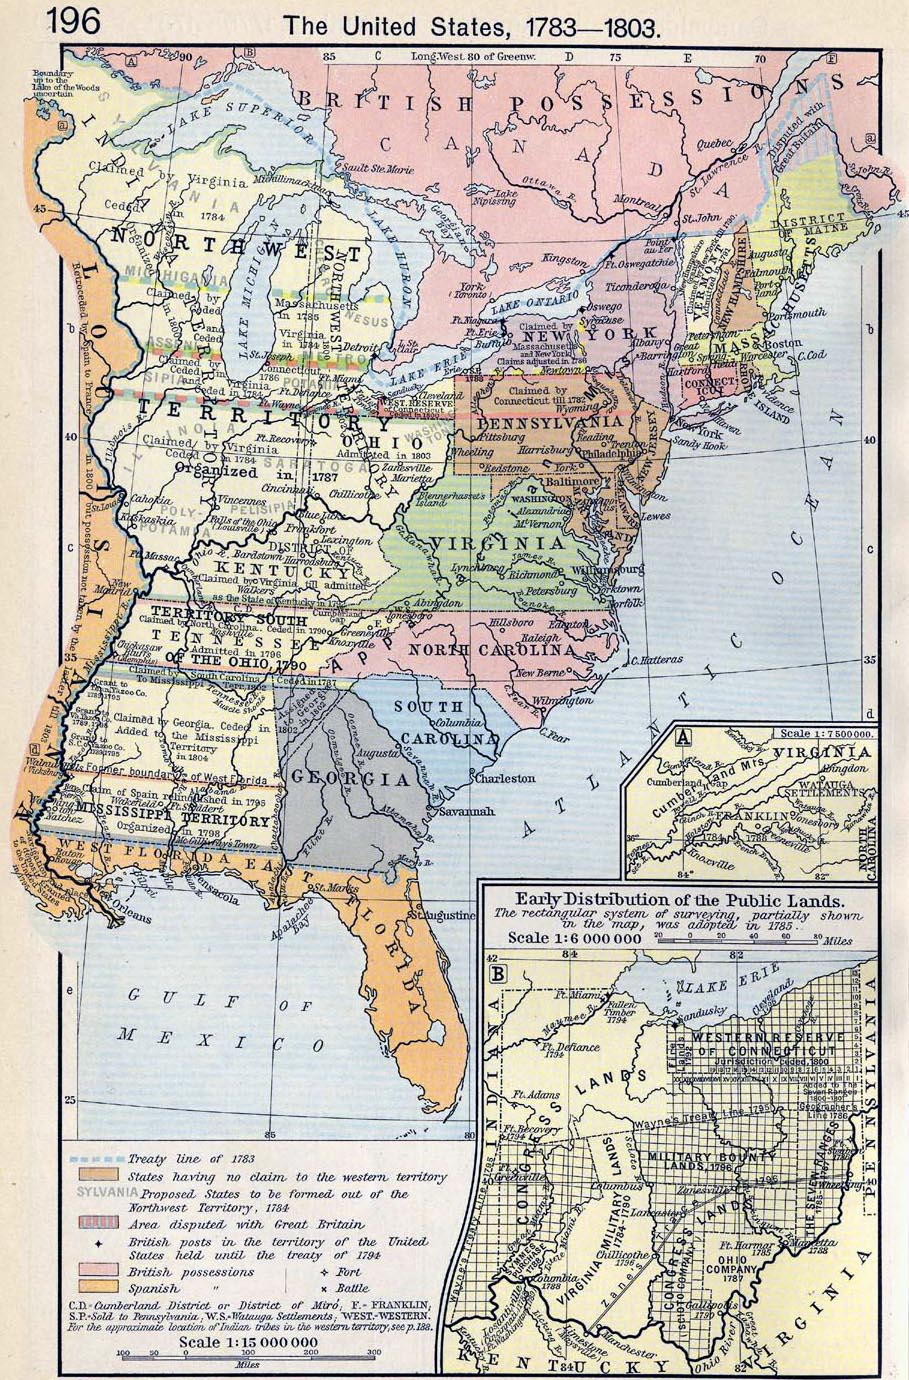 map of the united states 1783 1803